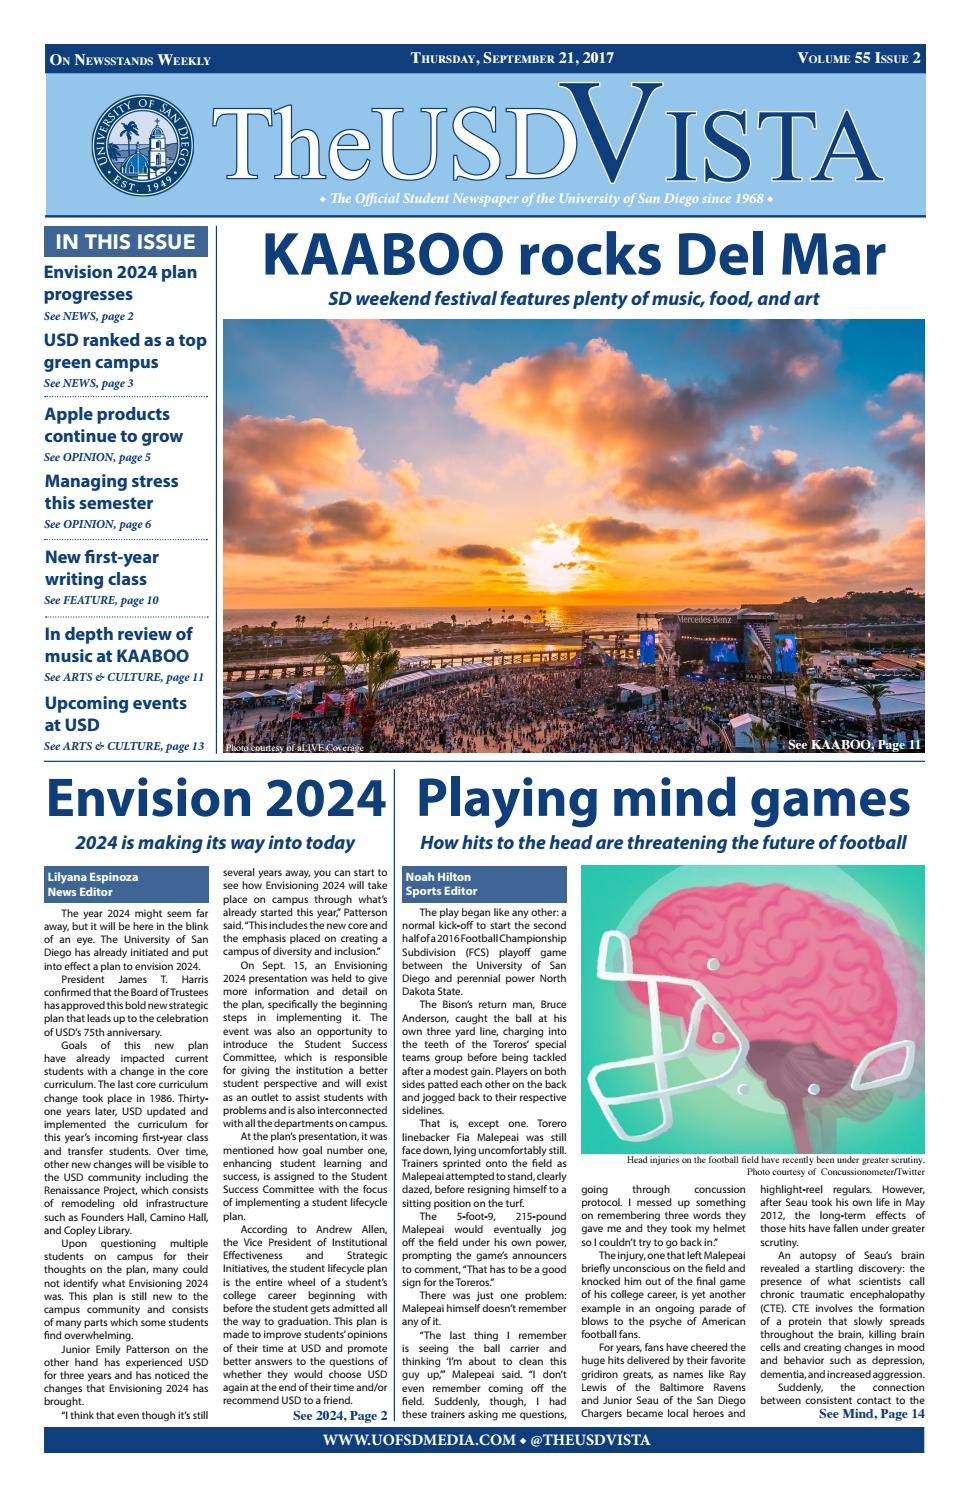 Volume 55, Issue 2 by The USD Vista - issuu